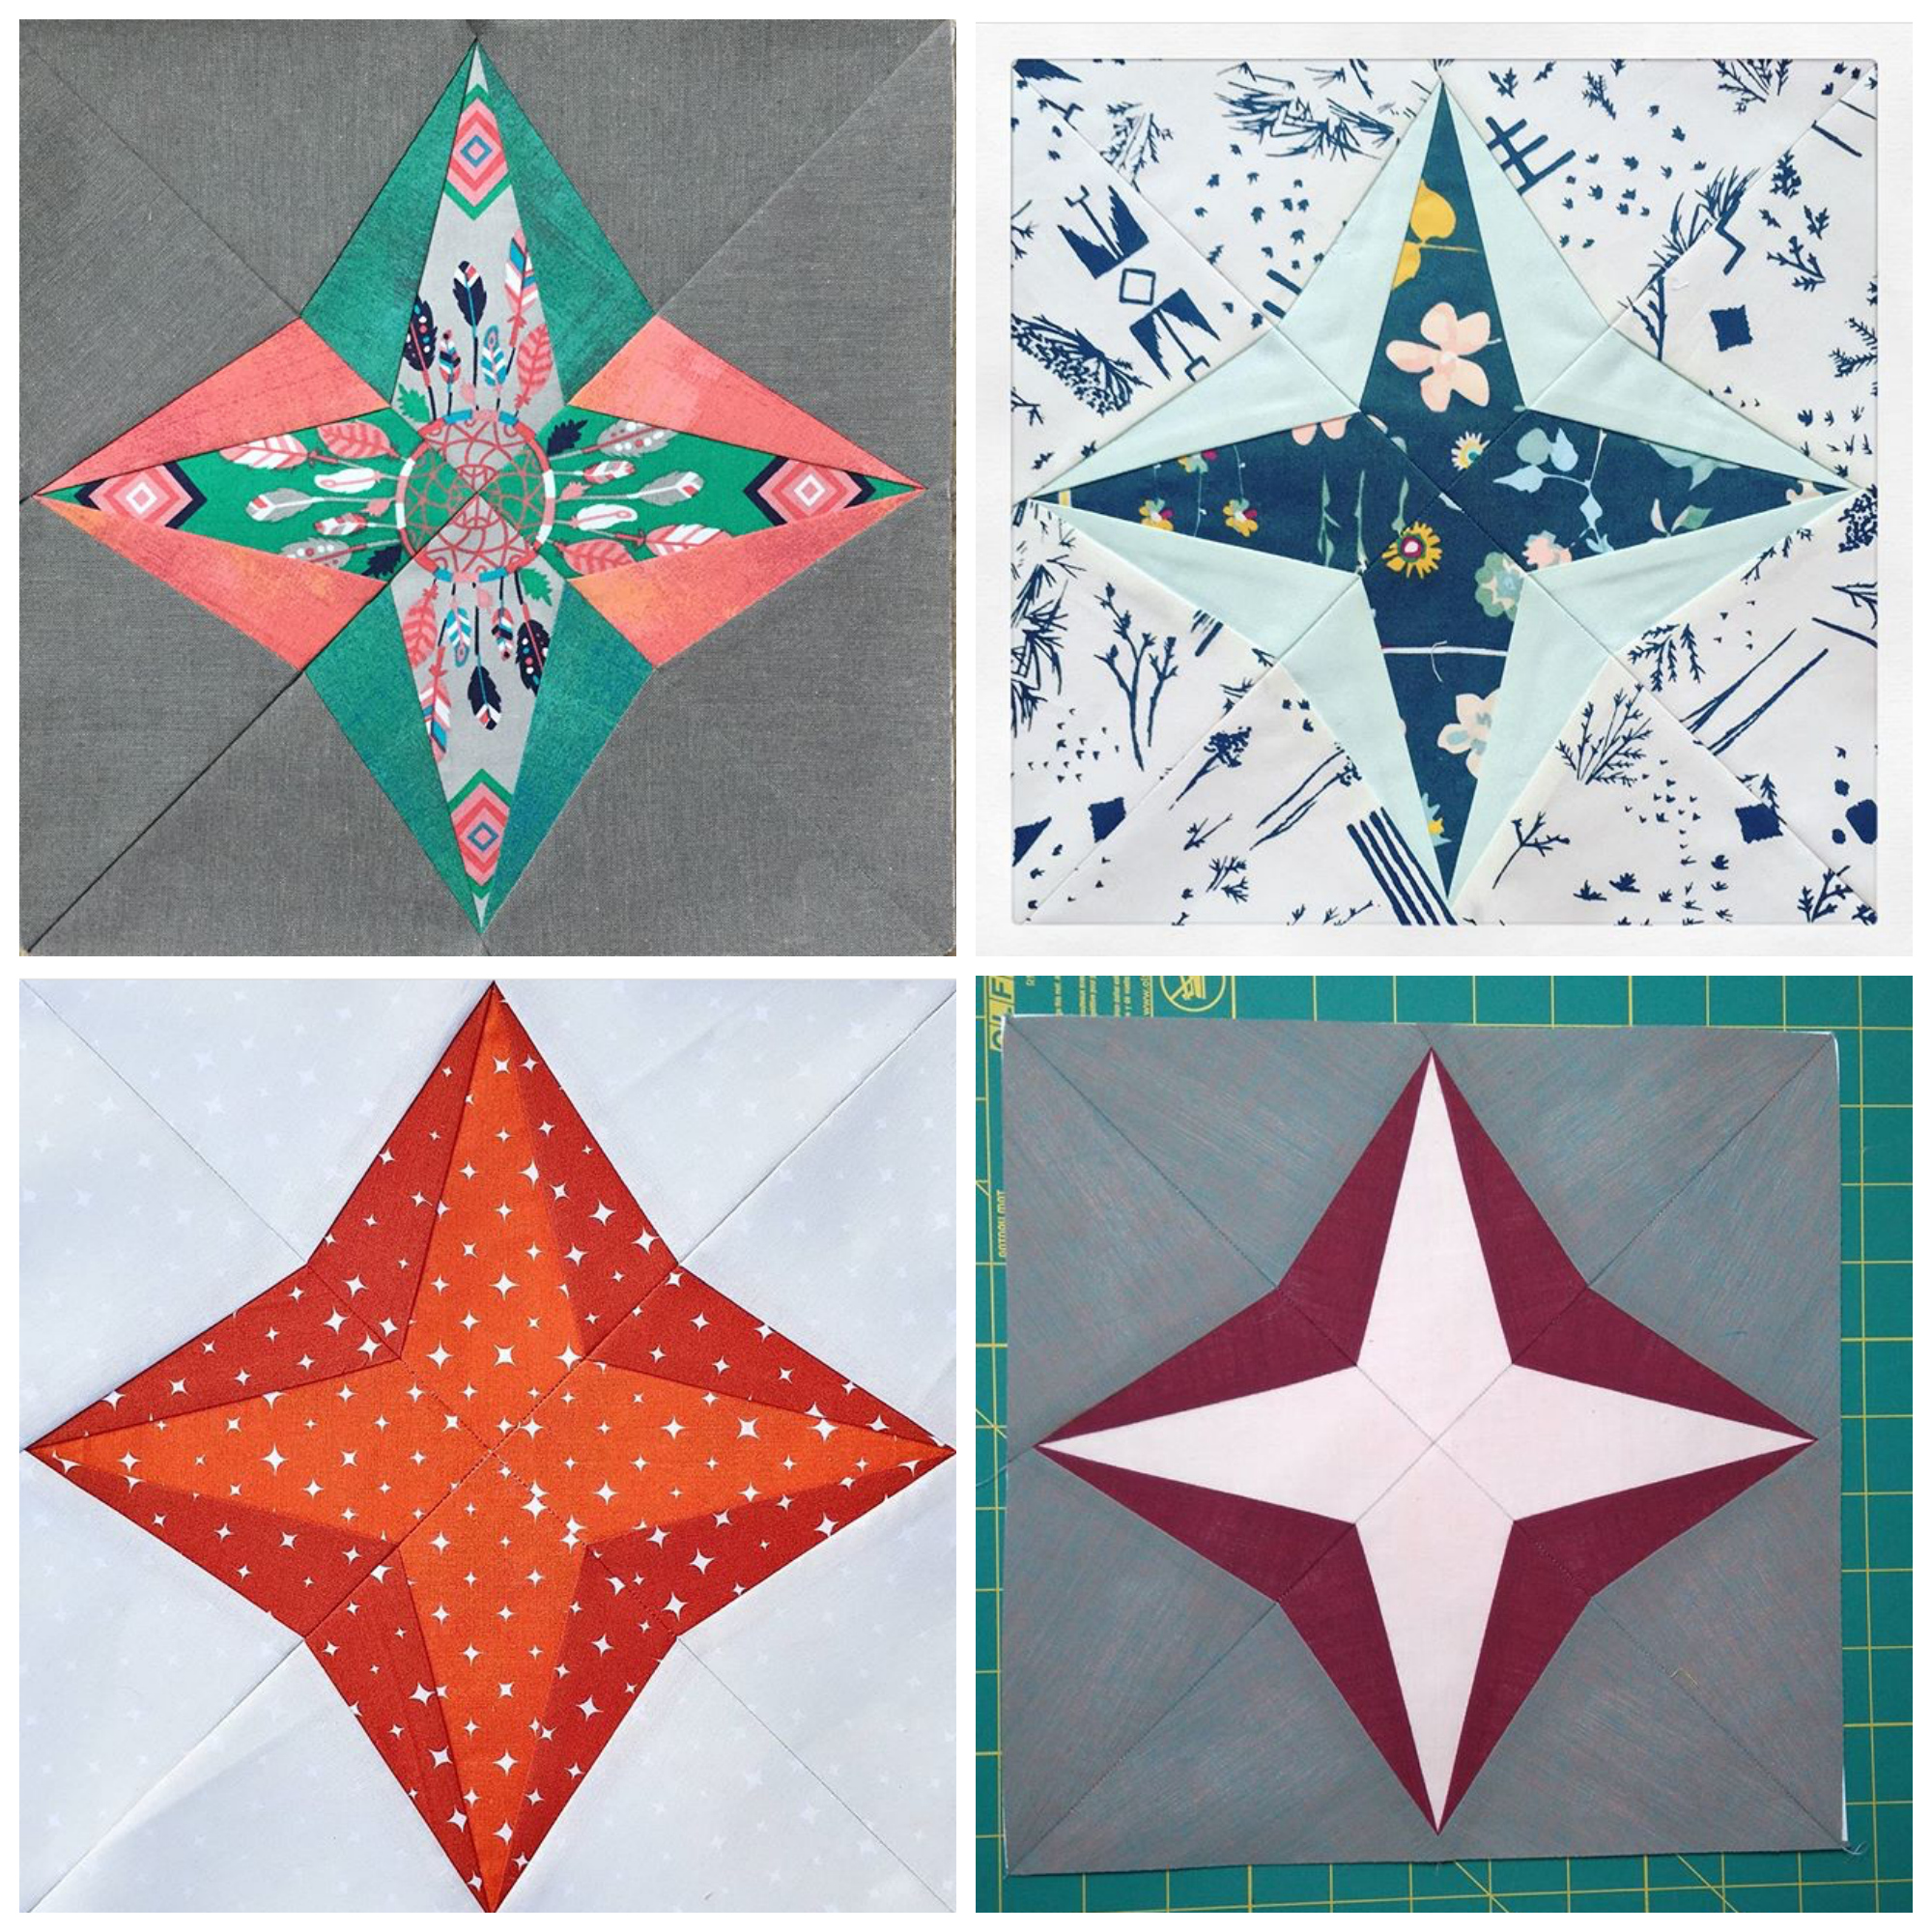 Capella Quilt Blocks From The Milky Way Sampler Pattern By BlossomHeartQuilts